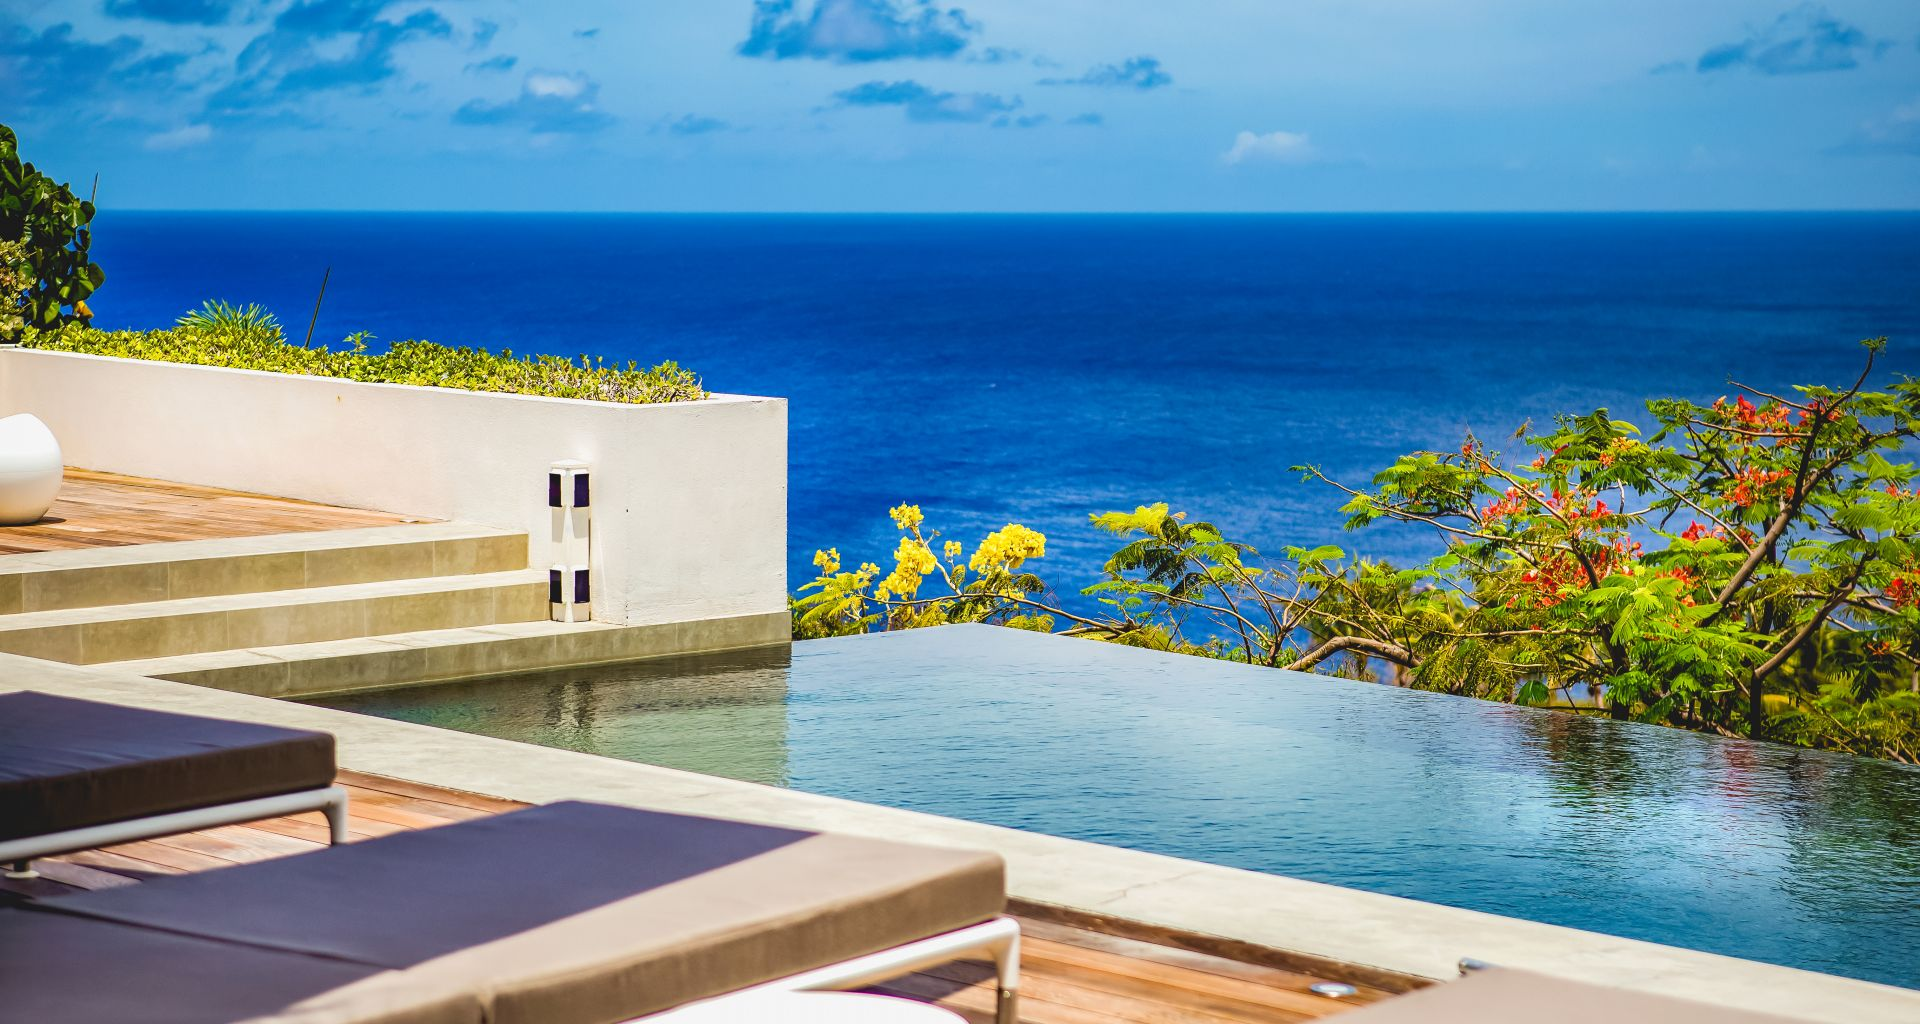 Villa palm springs st barts caribbean casol villas france for St barts in the caribbean